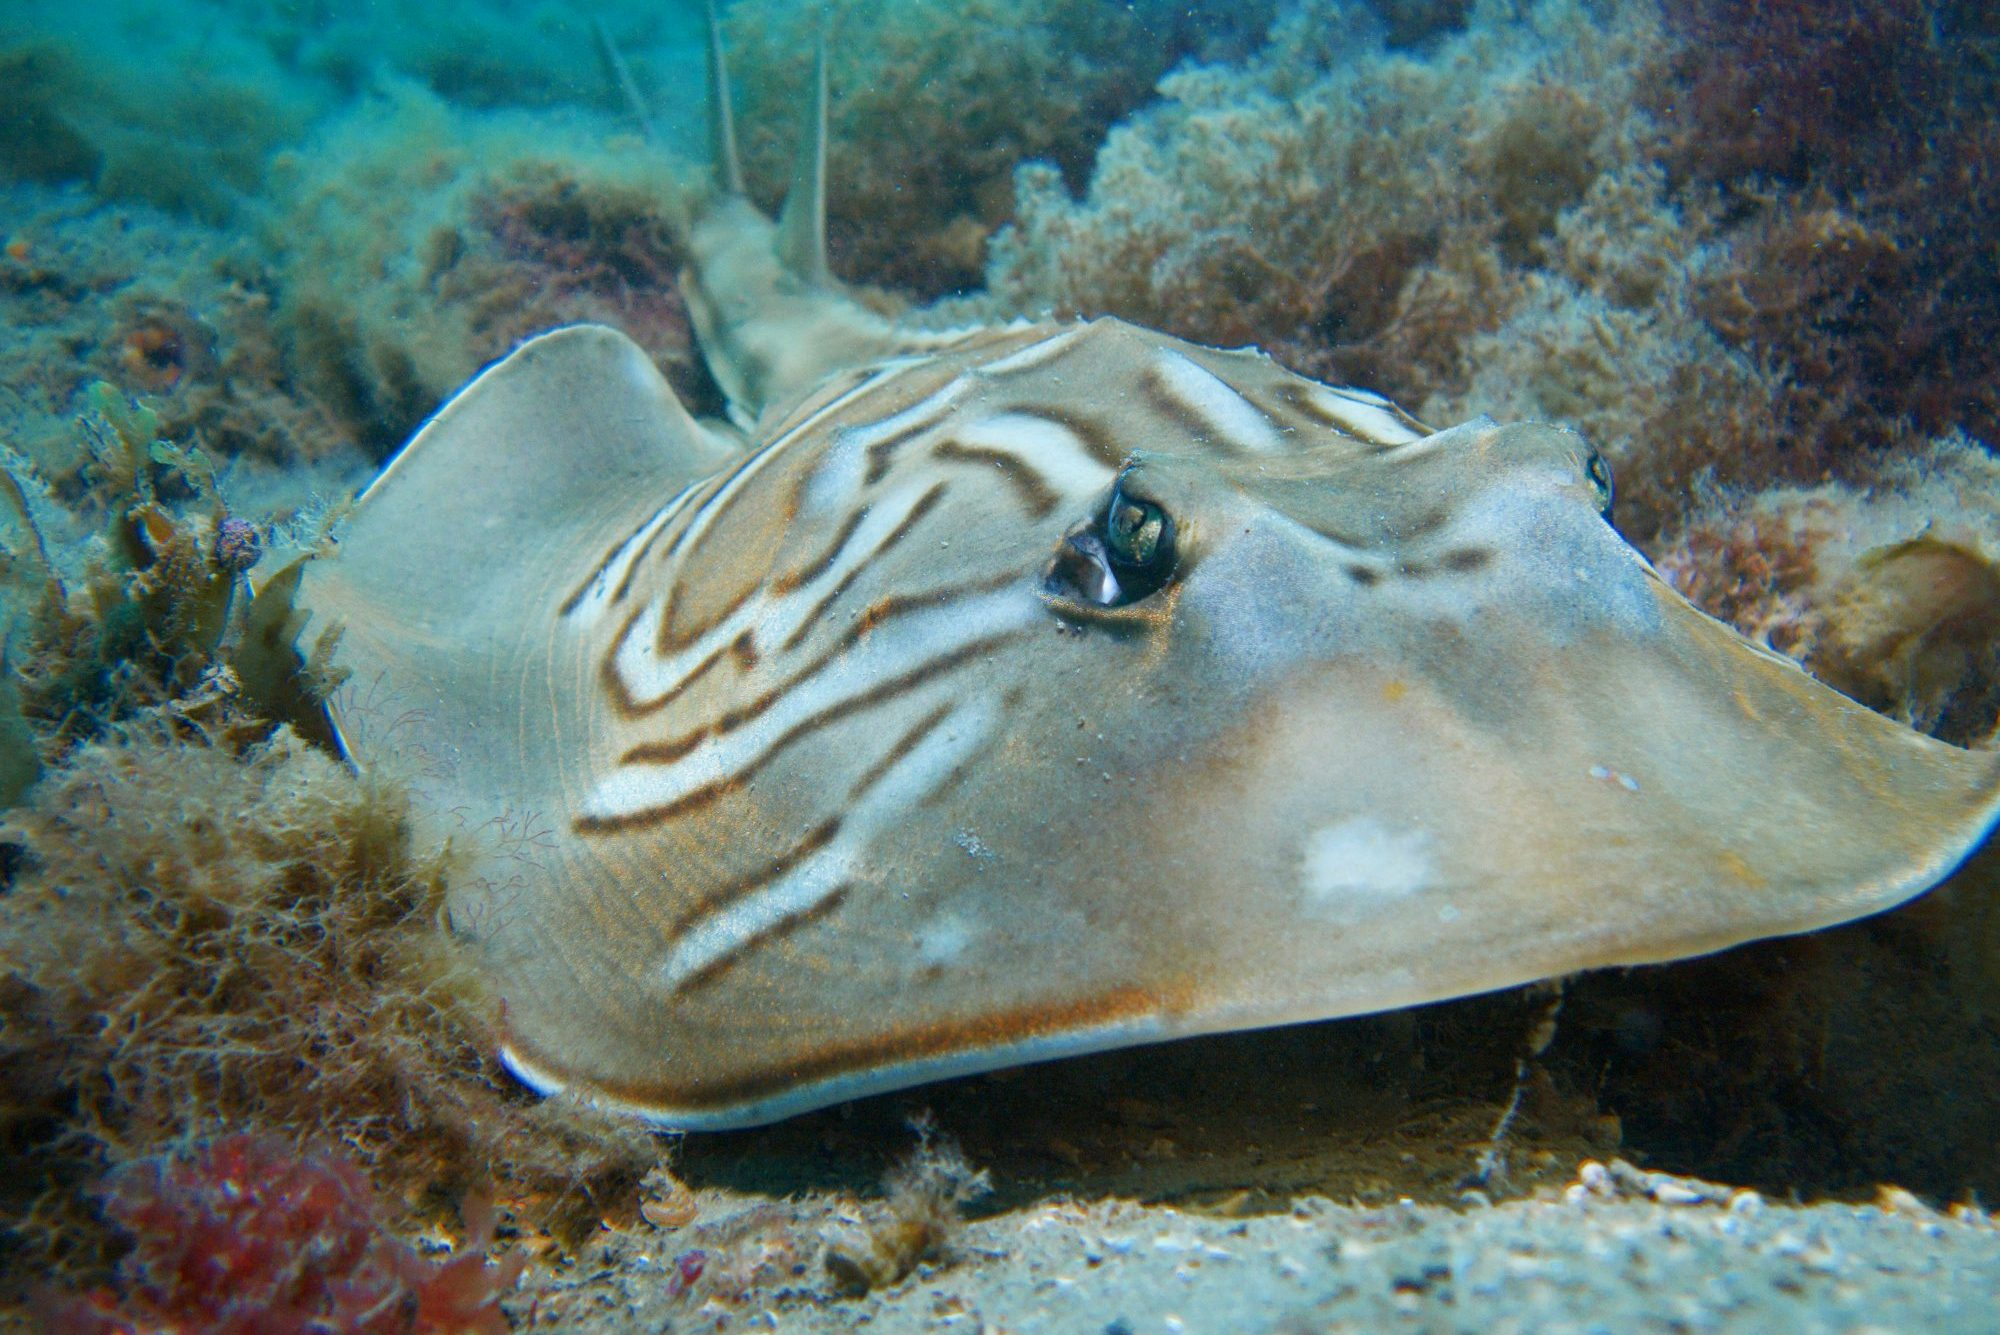 Dive with amazing marine life on our guided dives